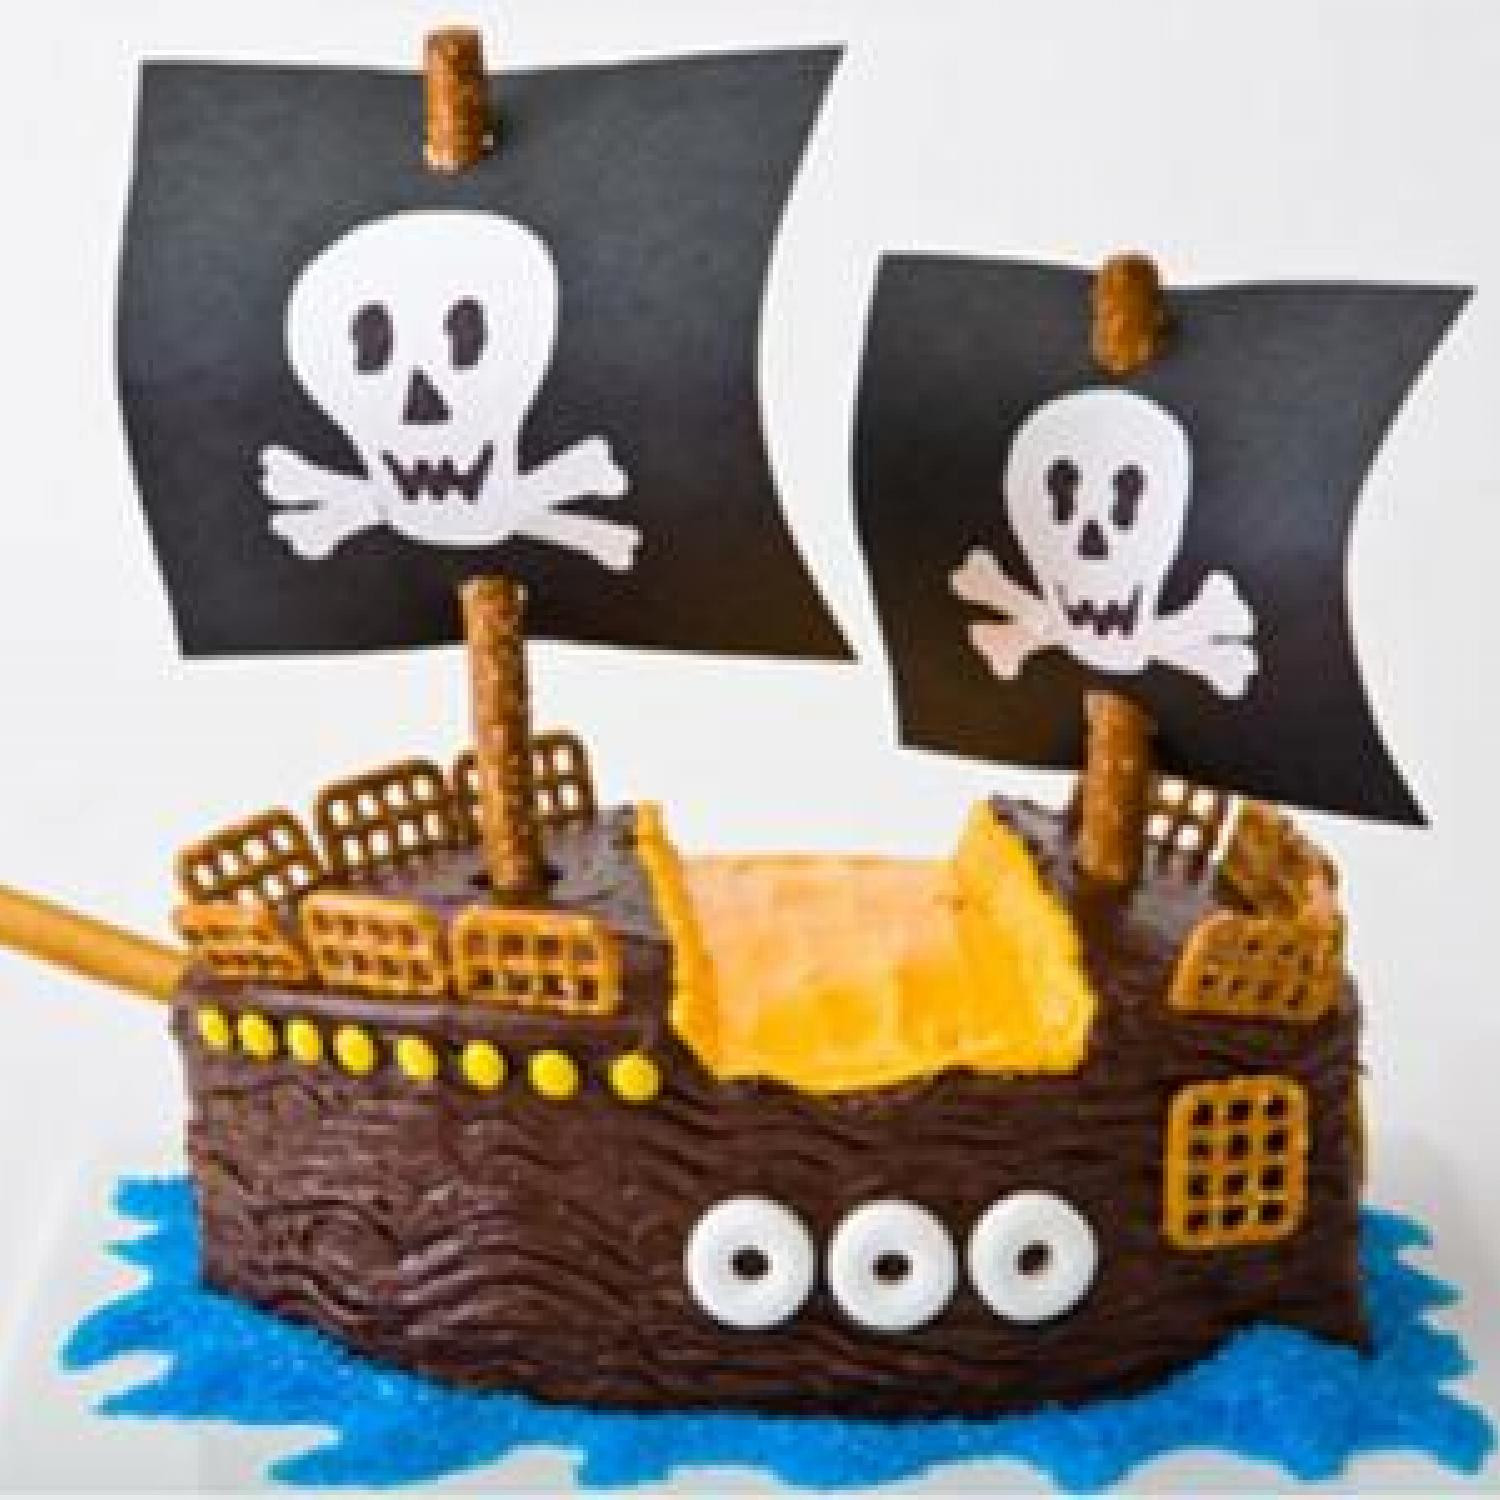 Best ideas about Ship Birthday Cake . Save or Pin Pirate Ship Birthday Cake Design Now.